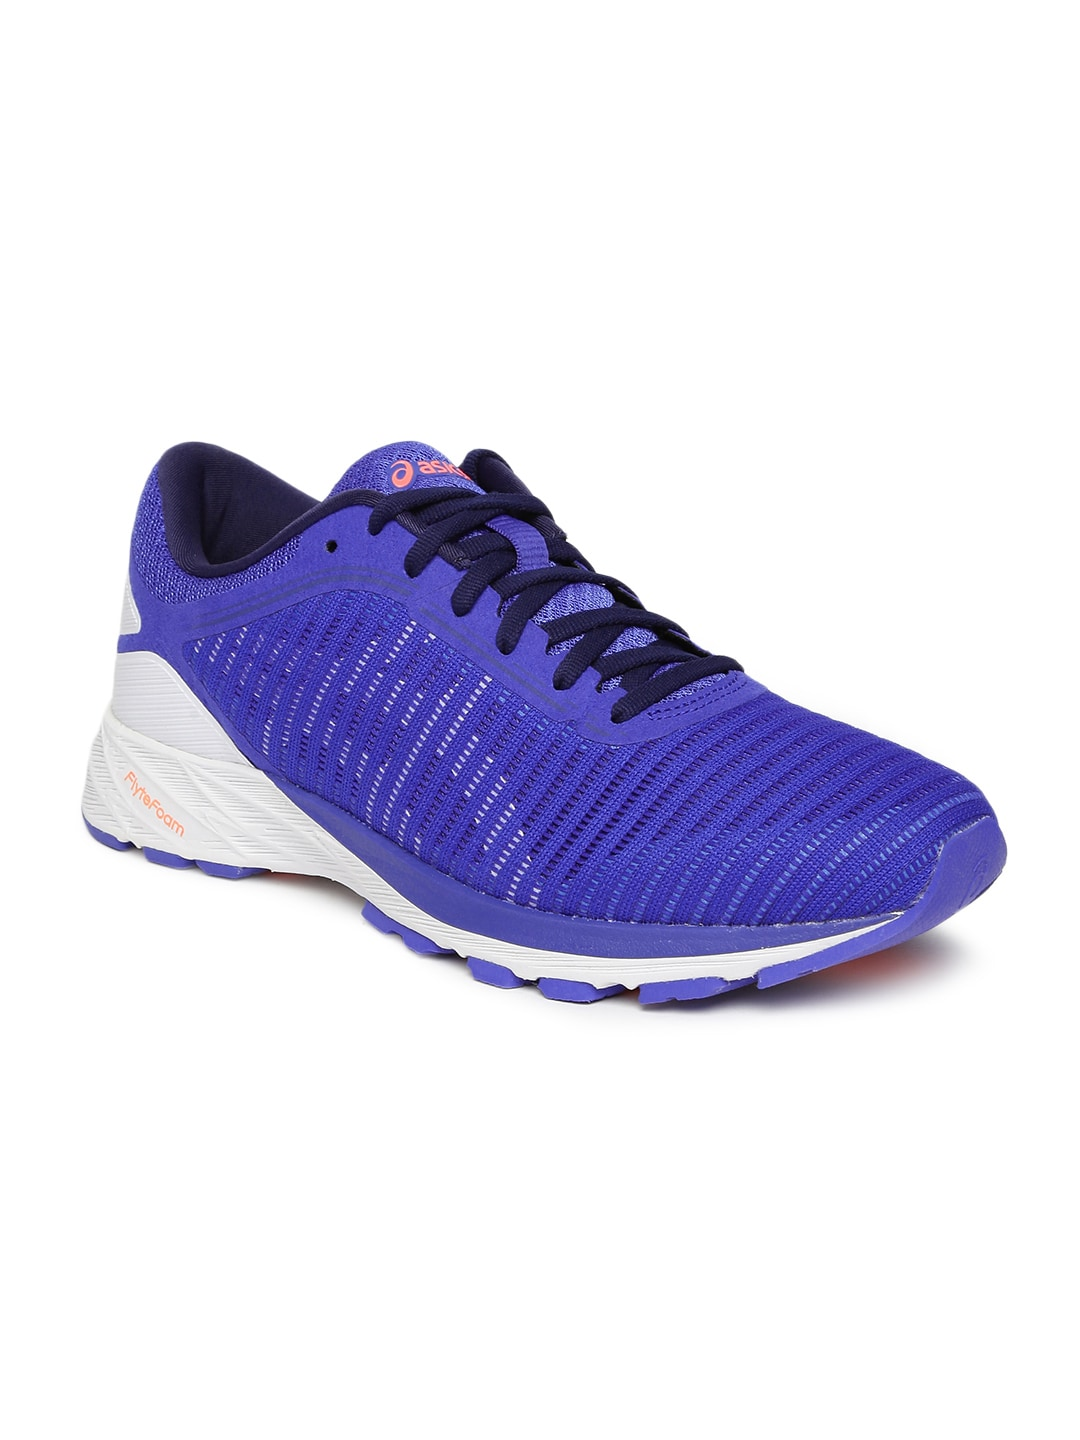 the latest 9744d aca49 Asics Running Shoes   Buy Asics Running Shoes Online in India at Best Price